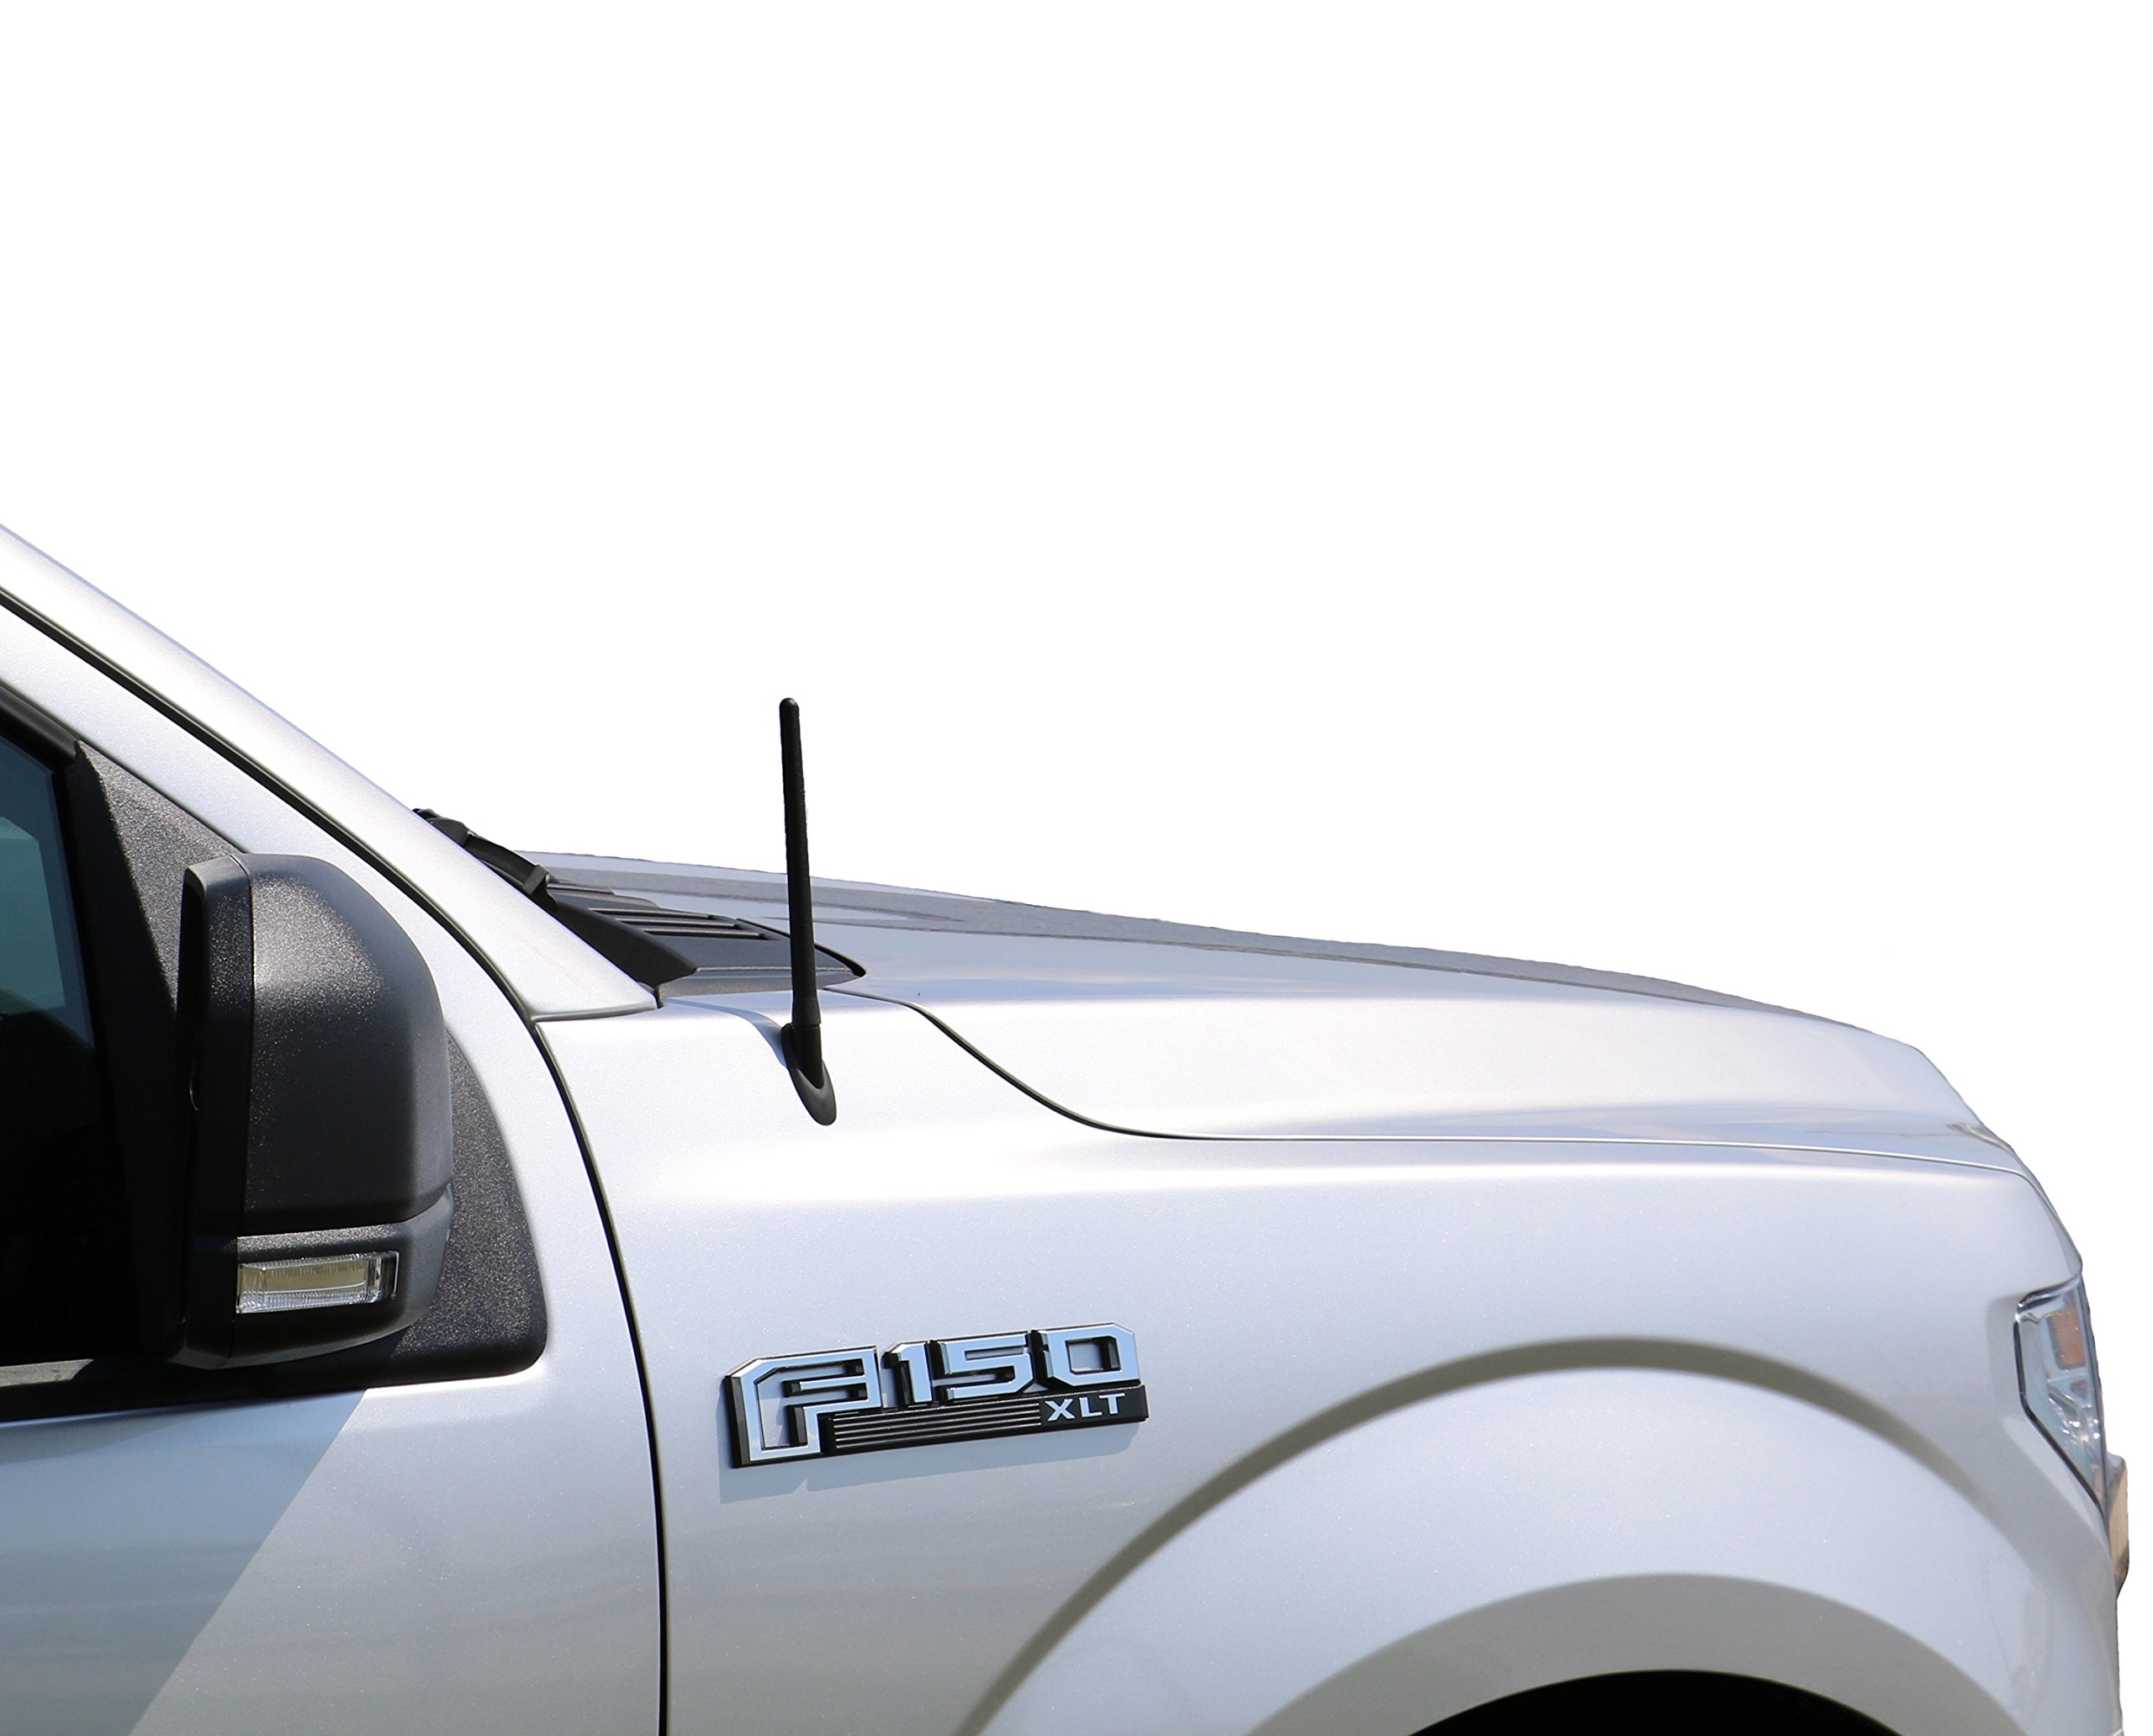 AntennaMastsRus - The Original 6 3/4 INCH Works with Ford F-150 (2009-2018) - Short Rubber Antenna - Reception Guaranteed - German Engineered - Internal Copper Coil by AntennaMastsRus